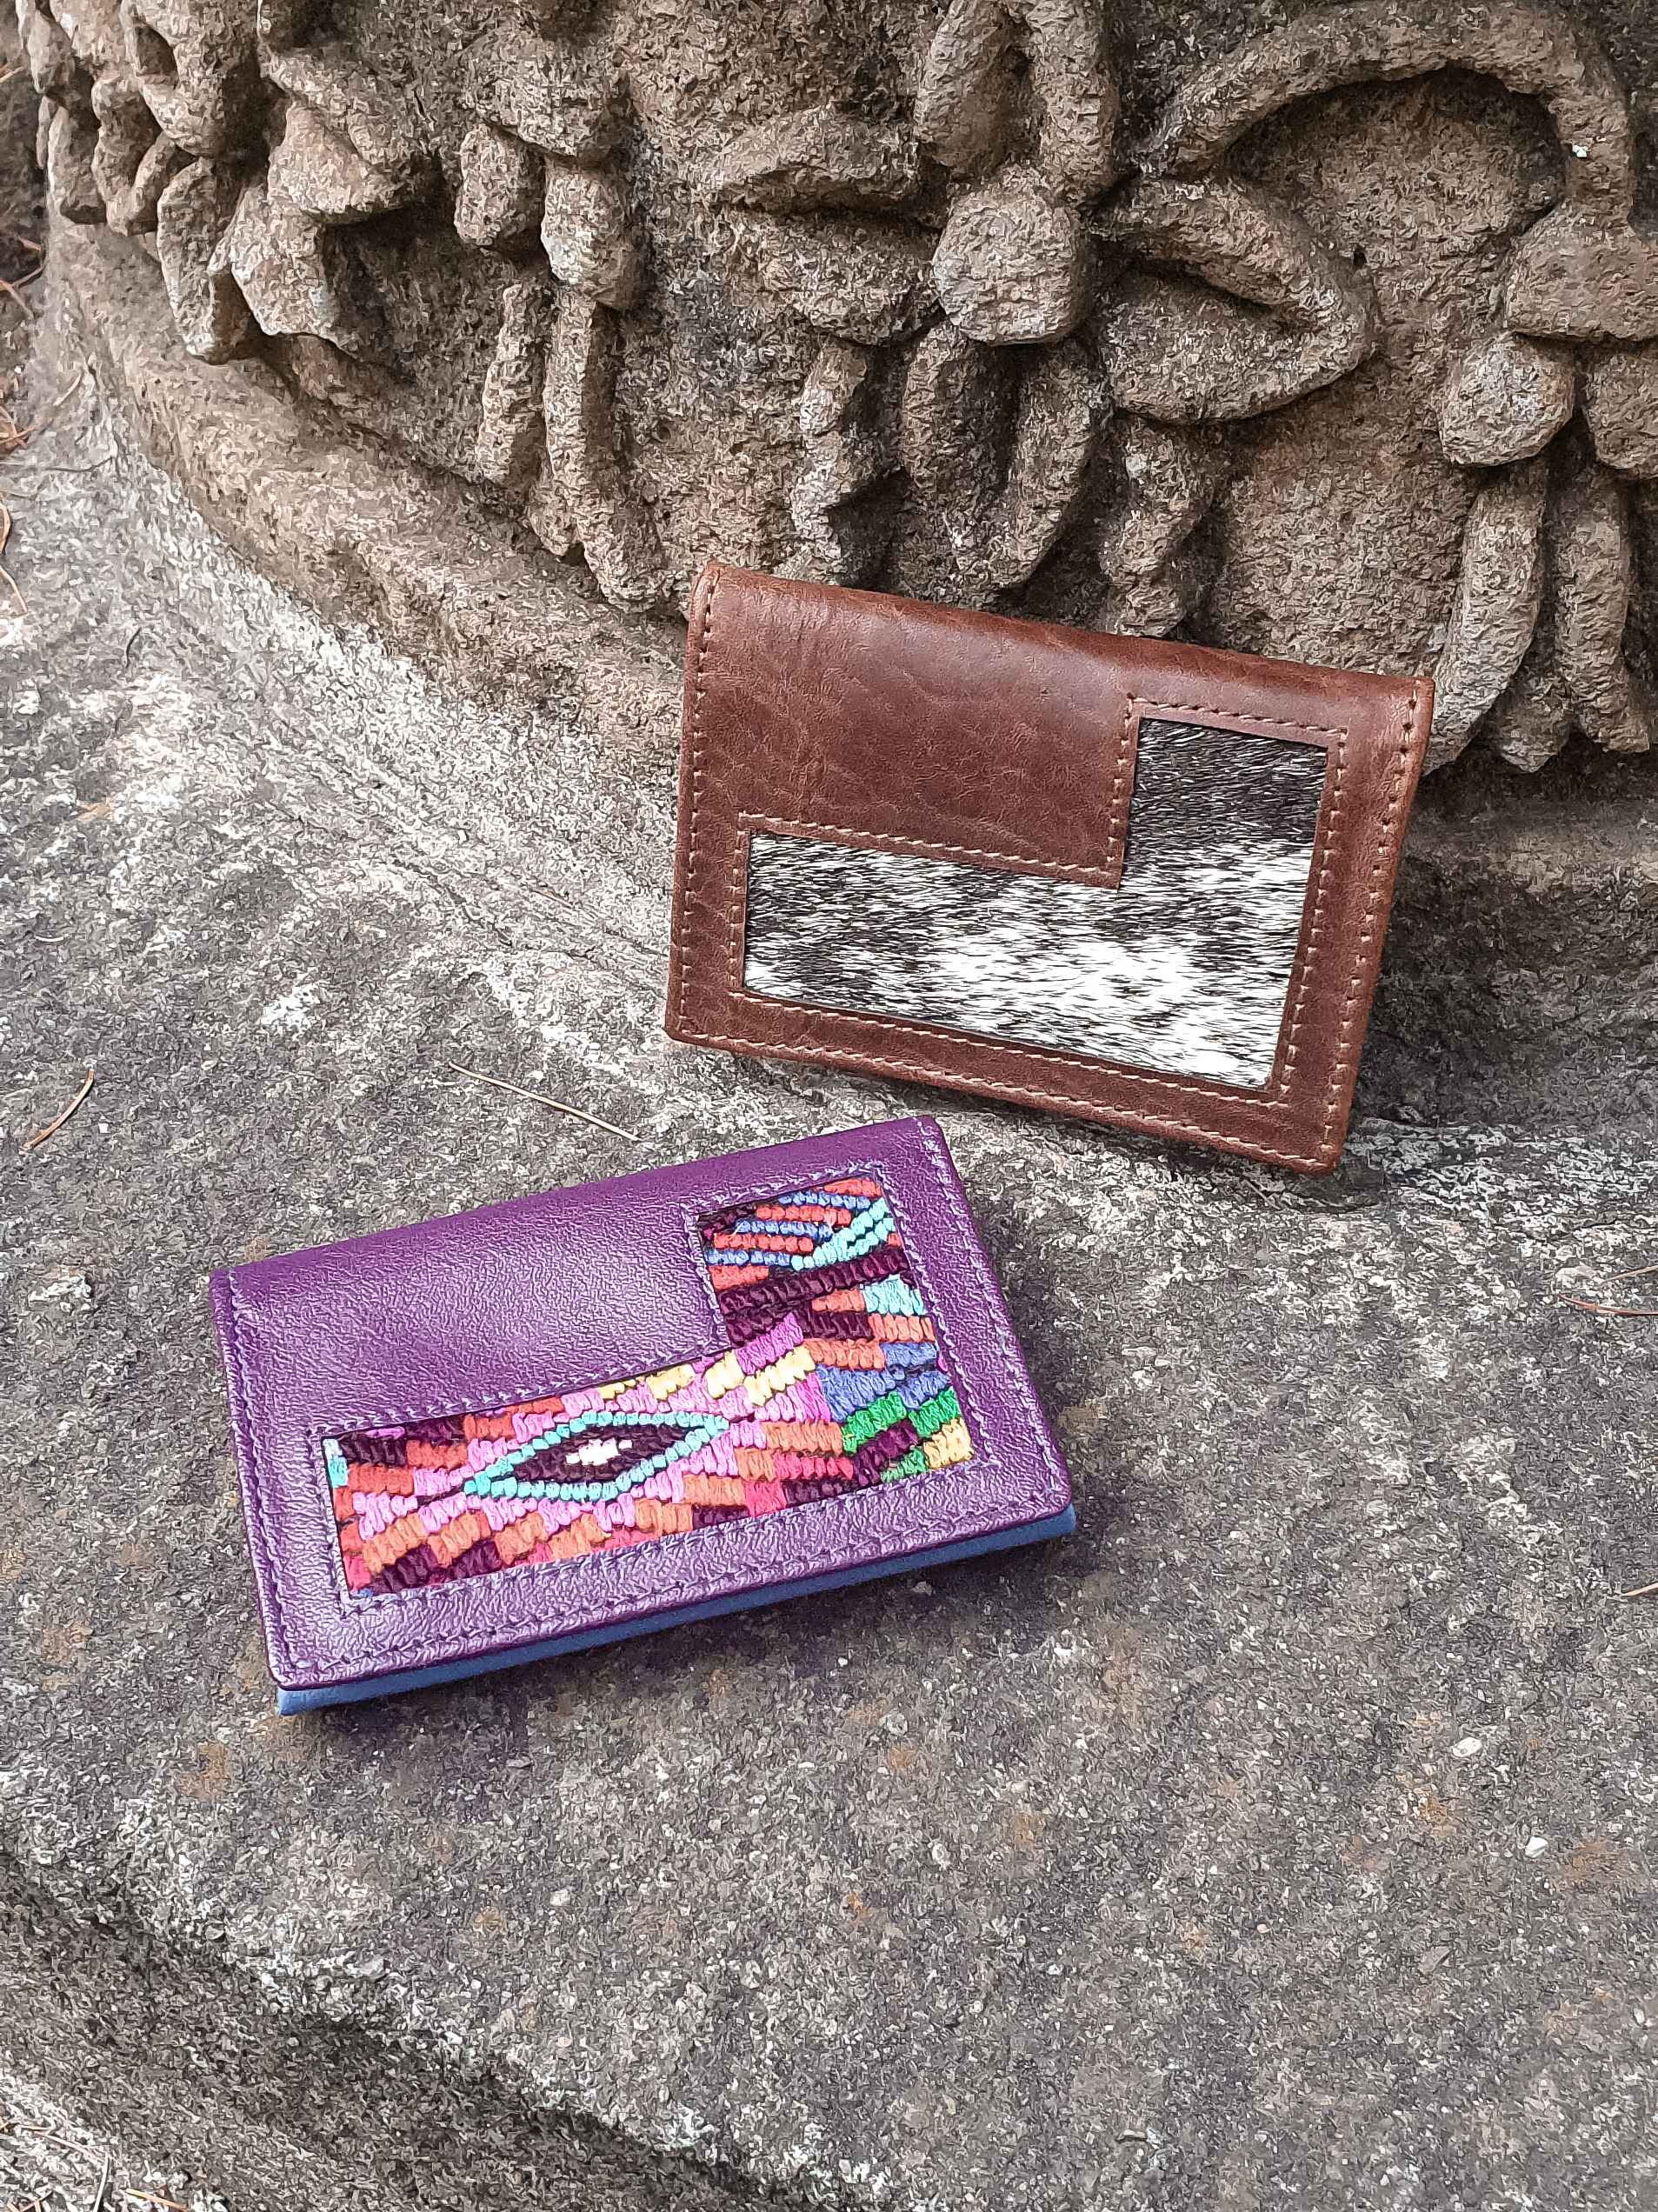 Coloibrí Card Holder by Poncho's Bags   Inspire Me Latin America